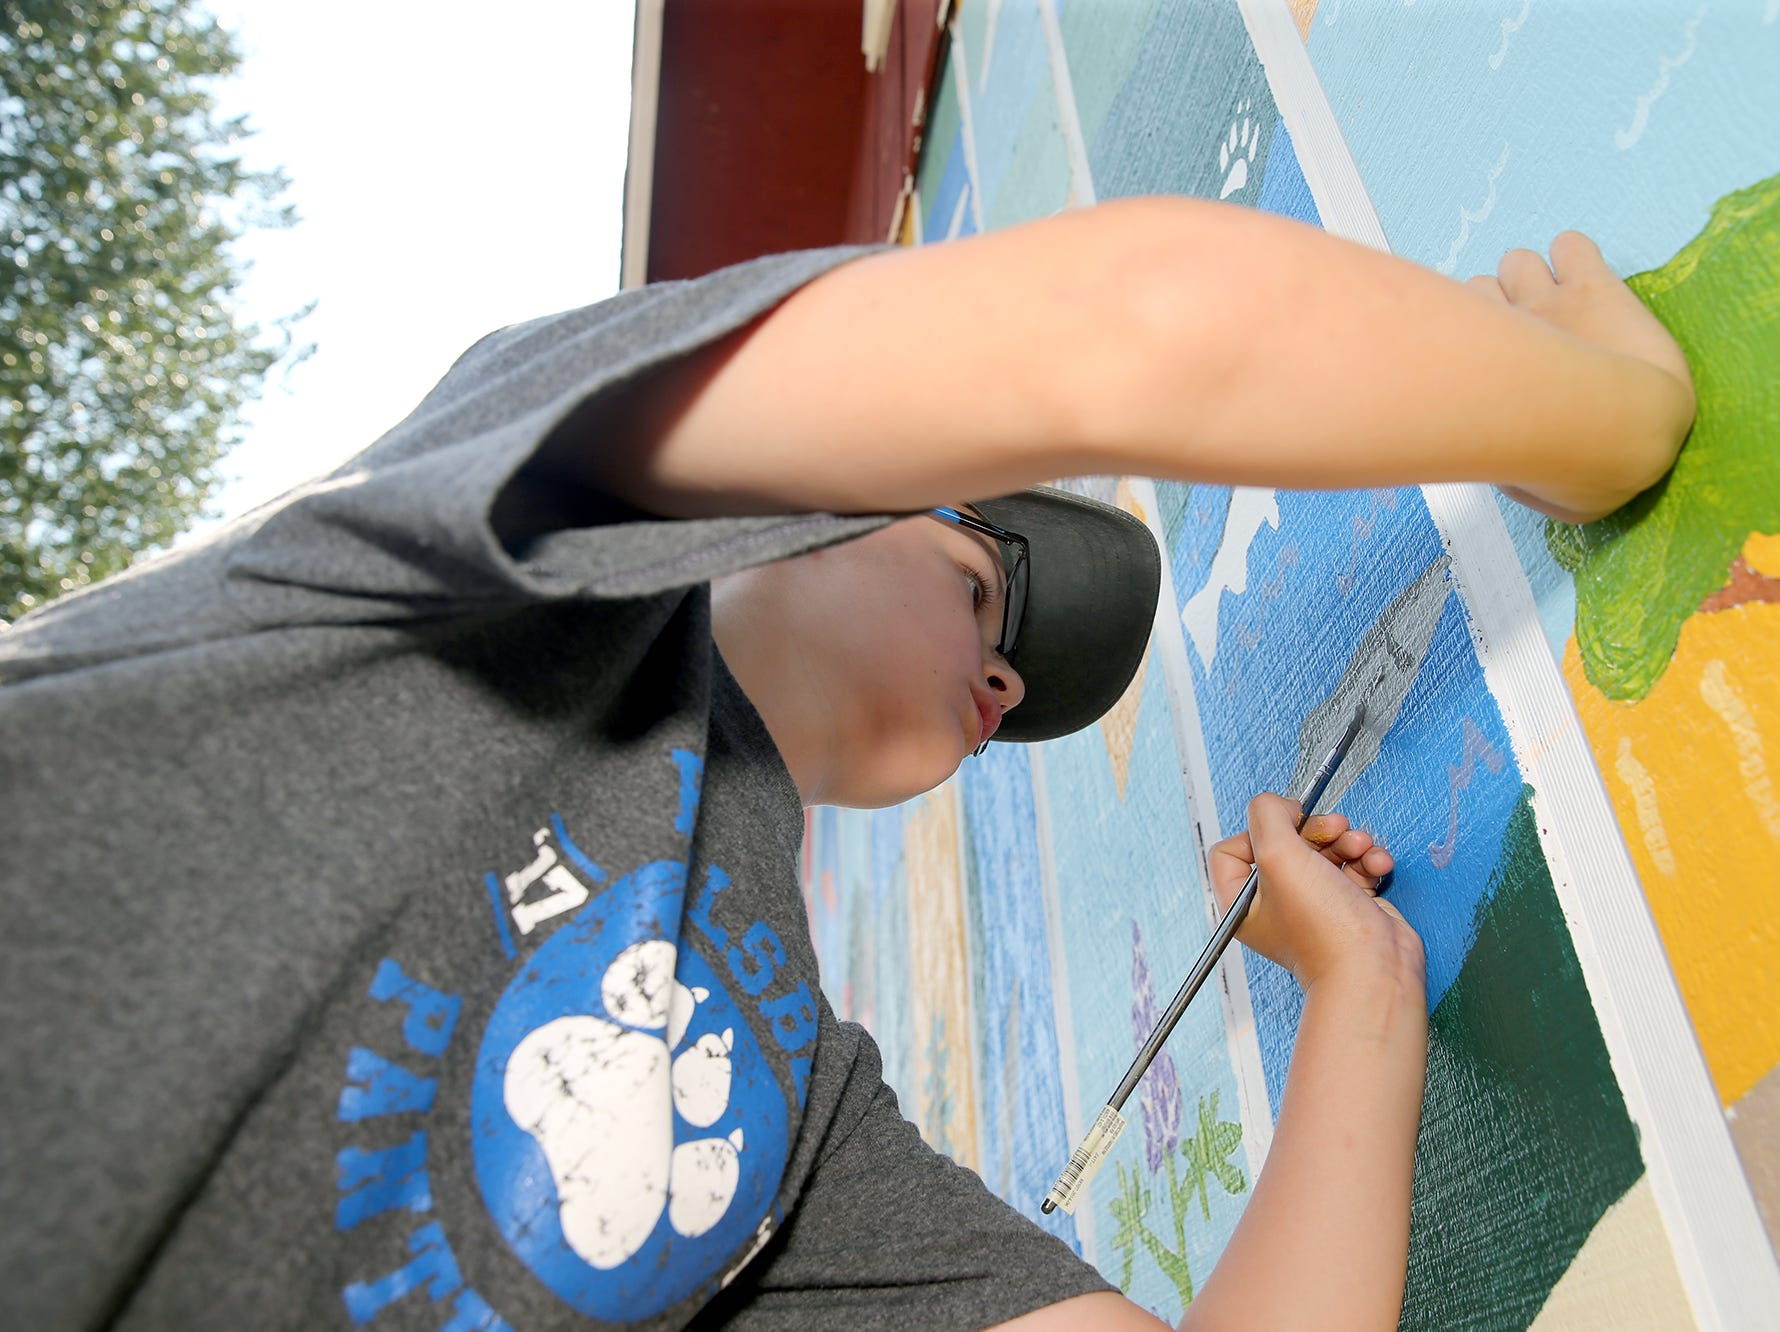 Soren O'Neil-Heine, 12, of Poulsbo volunteers to paint a salmon on the nature mural on Wednesday August 8, 2018.